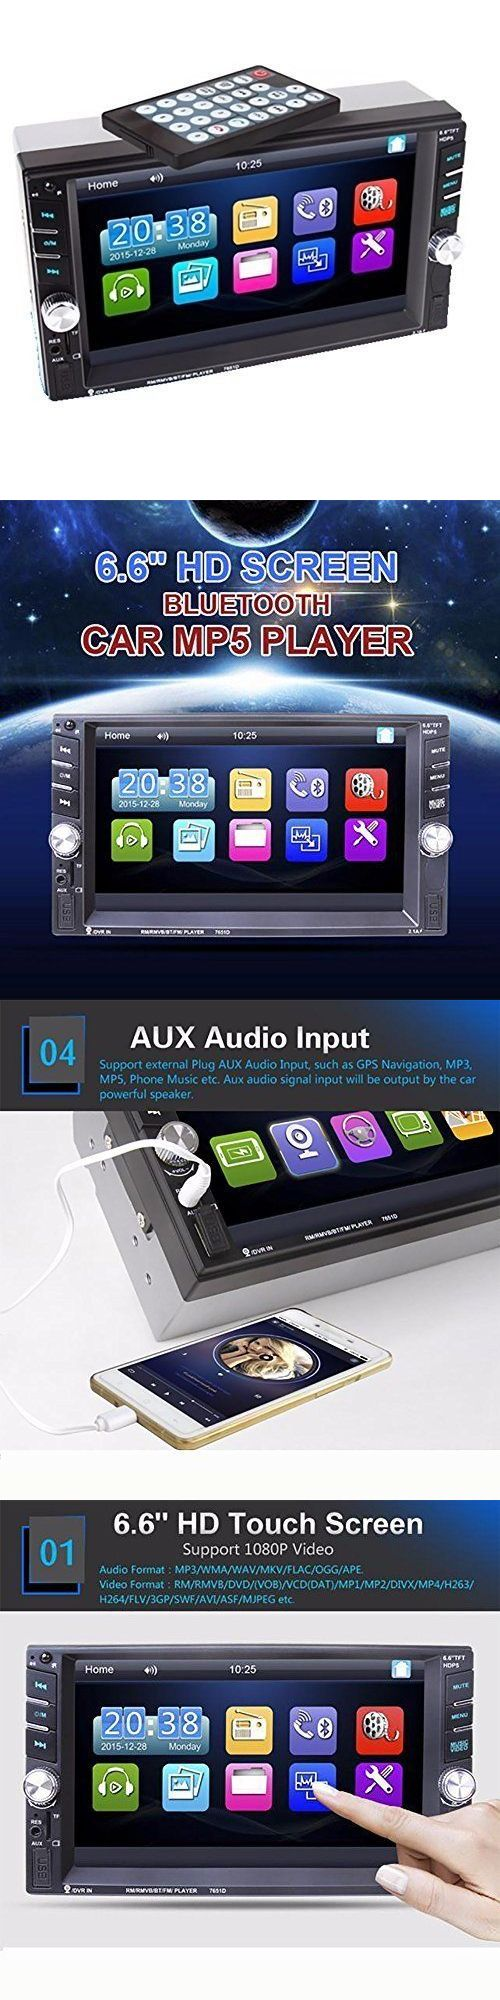 Audio video remotes bluetooth car stereo 6 6hd touch screen mp5 player radio audio remote